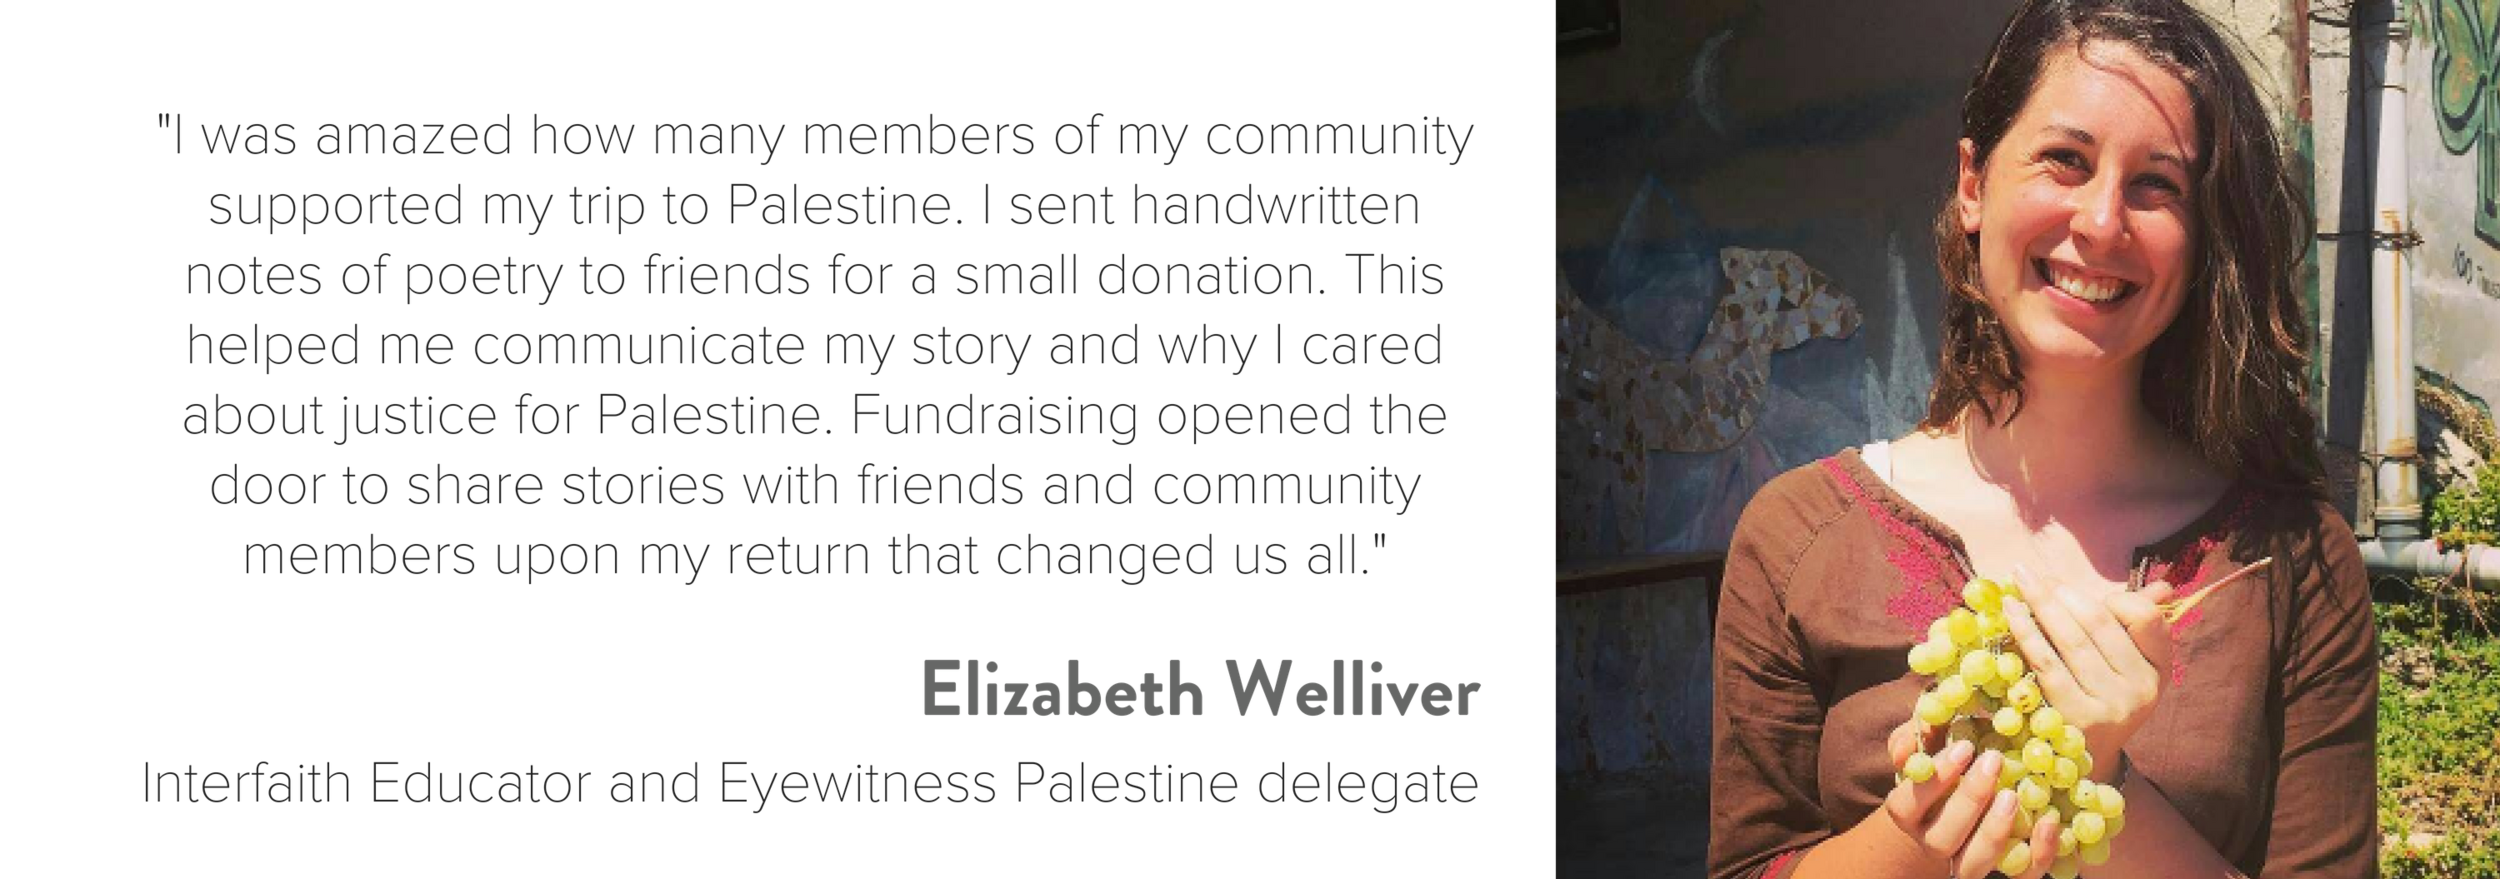 Elizabeth Welliver - Funding Trip Testimonials for Website.png